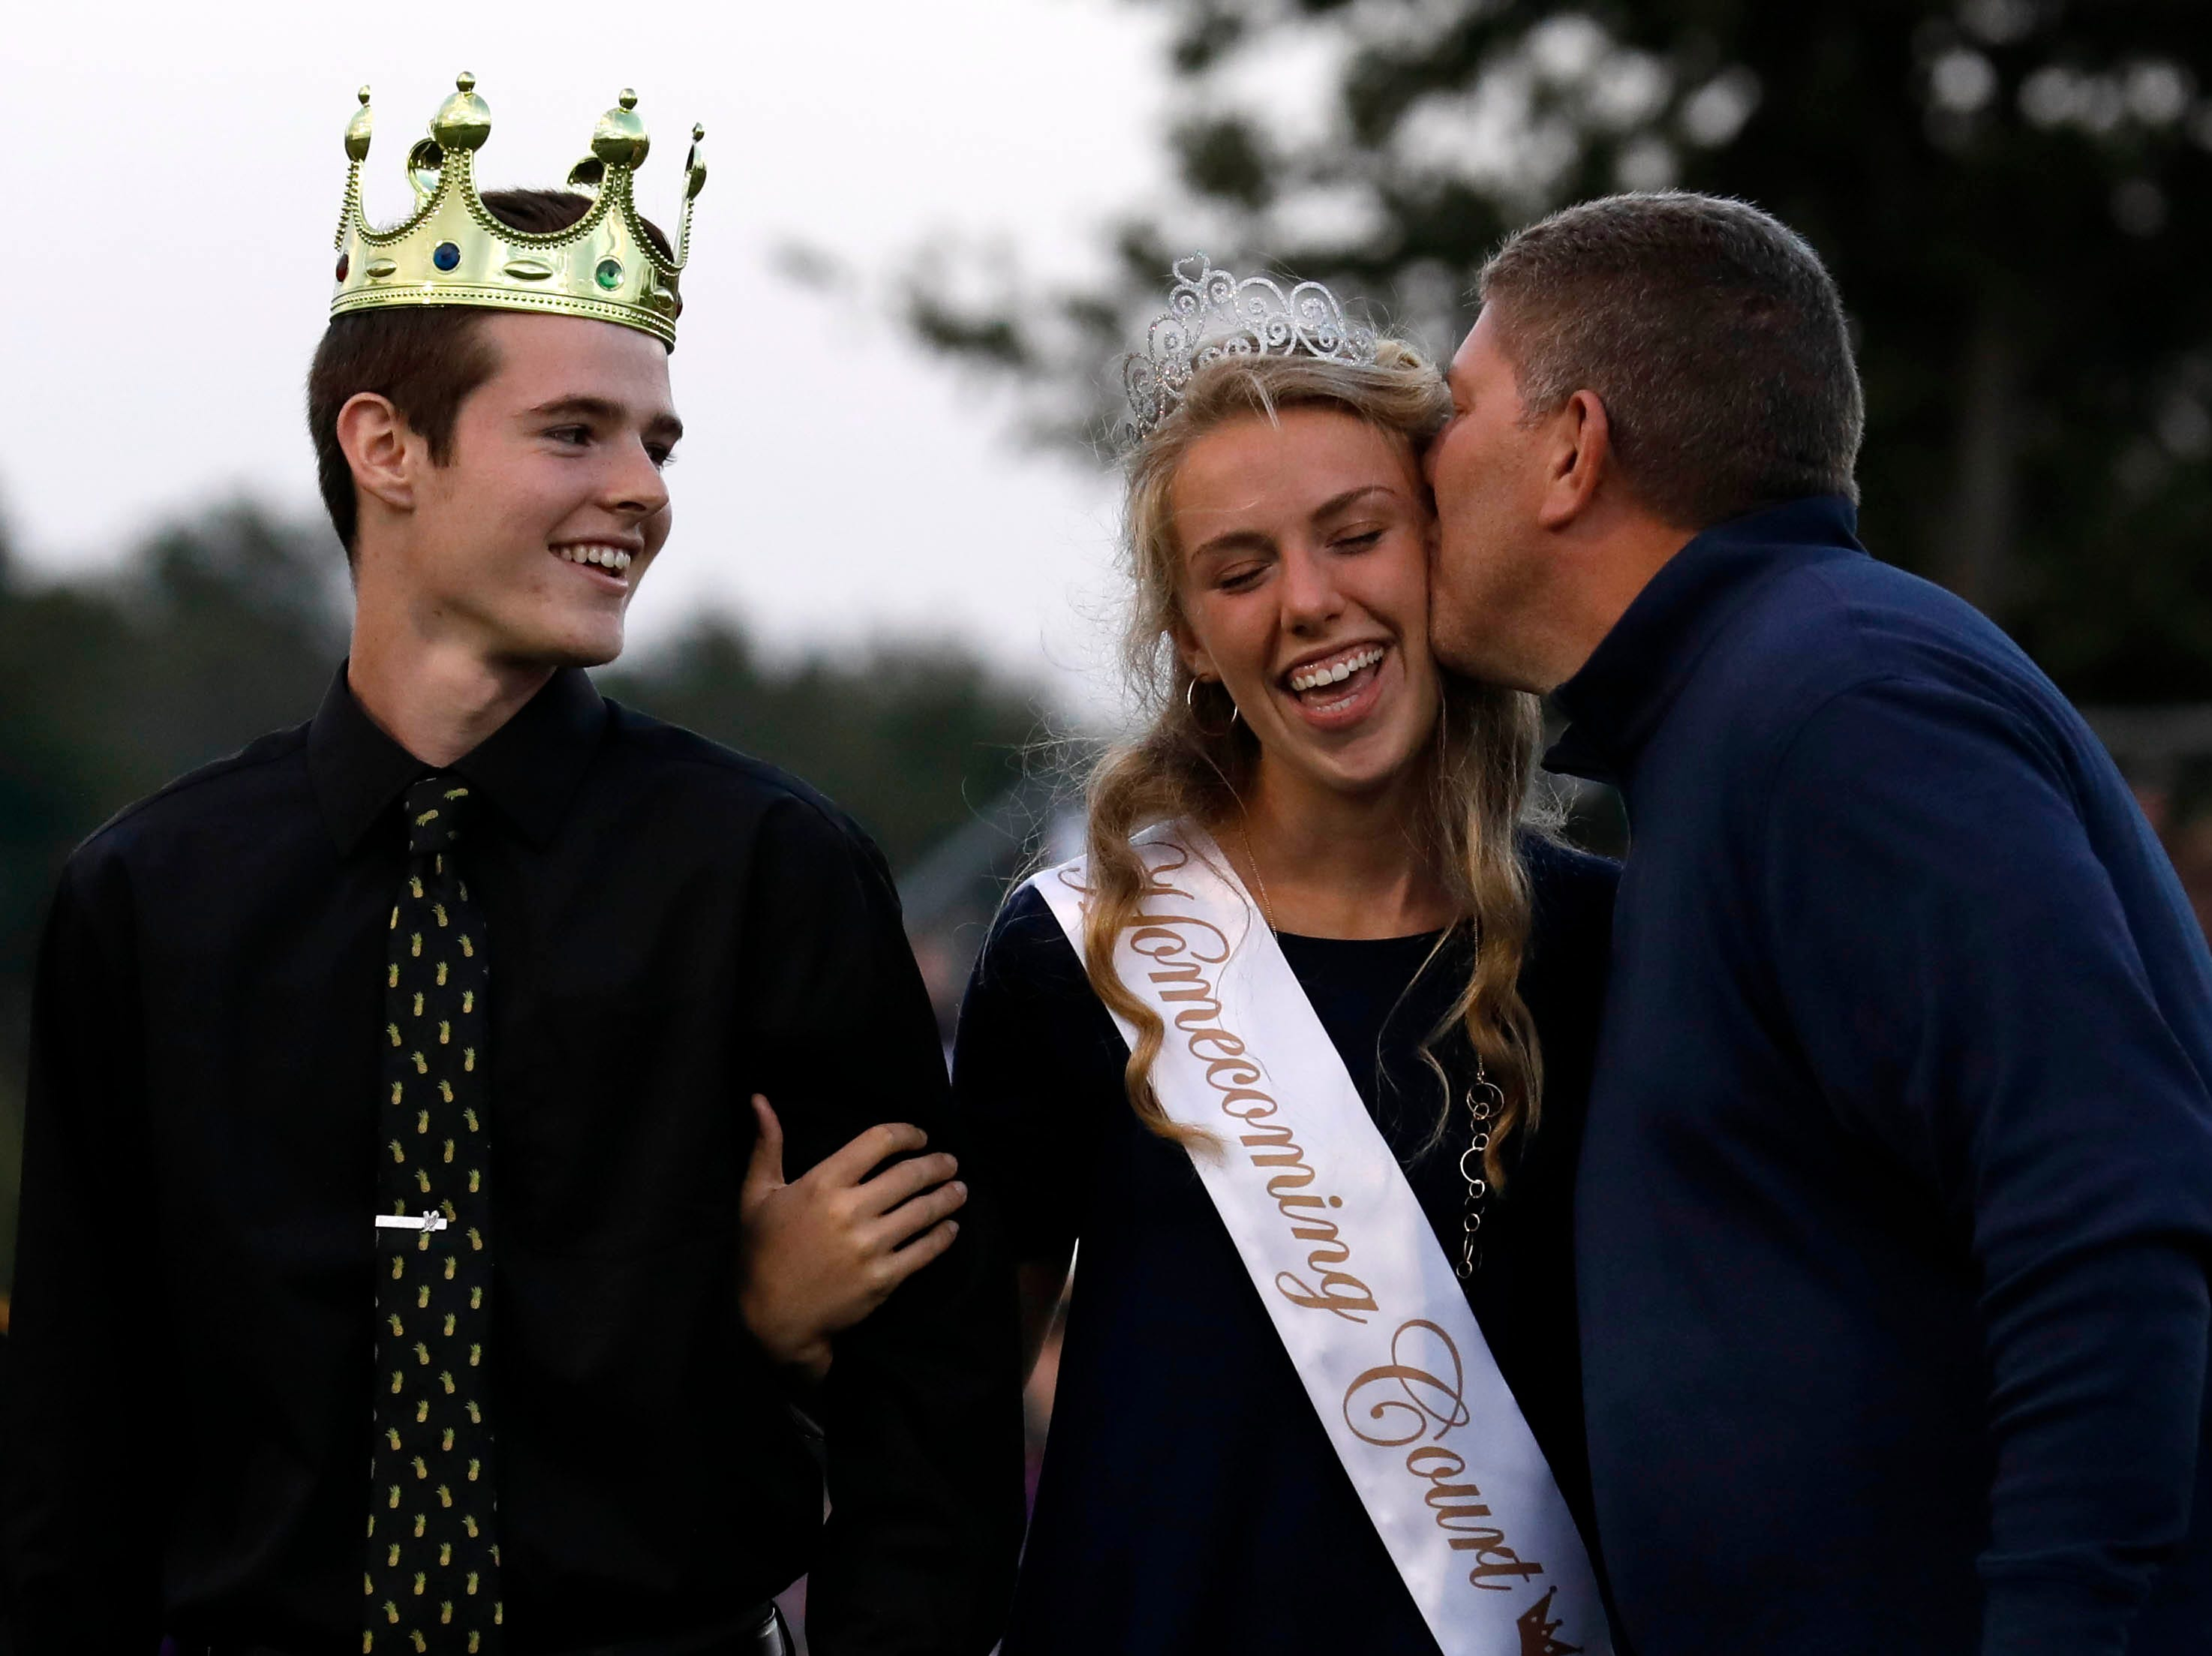 Marty Evaline, right, give his daughter Emaleigh Evaline a kiss on the cheek after she was crowned homecoming queen before Friday night's football game, Oct. 5, 2018, at Bloom-Carroll High School in Carroll.